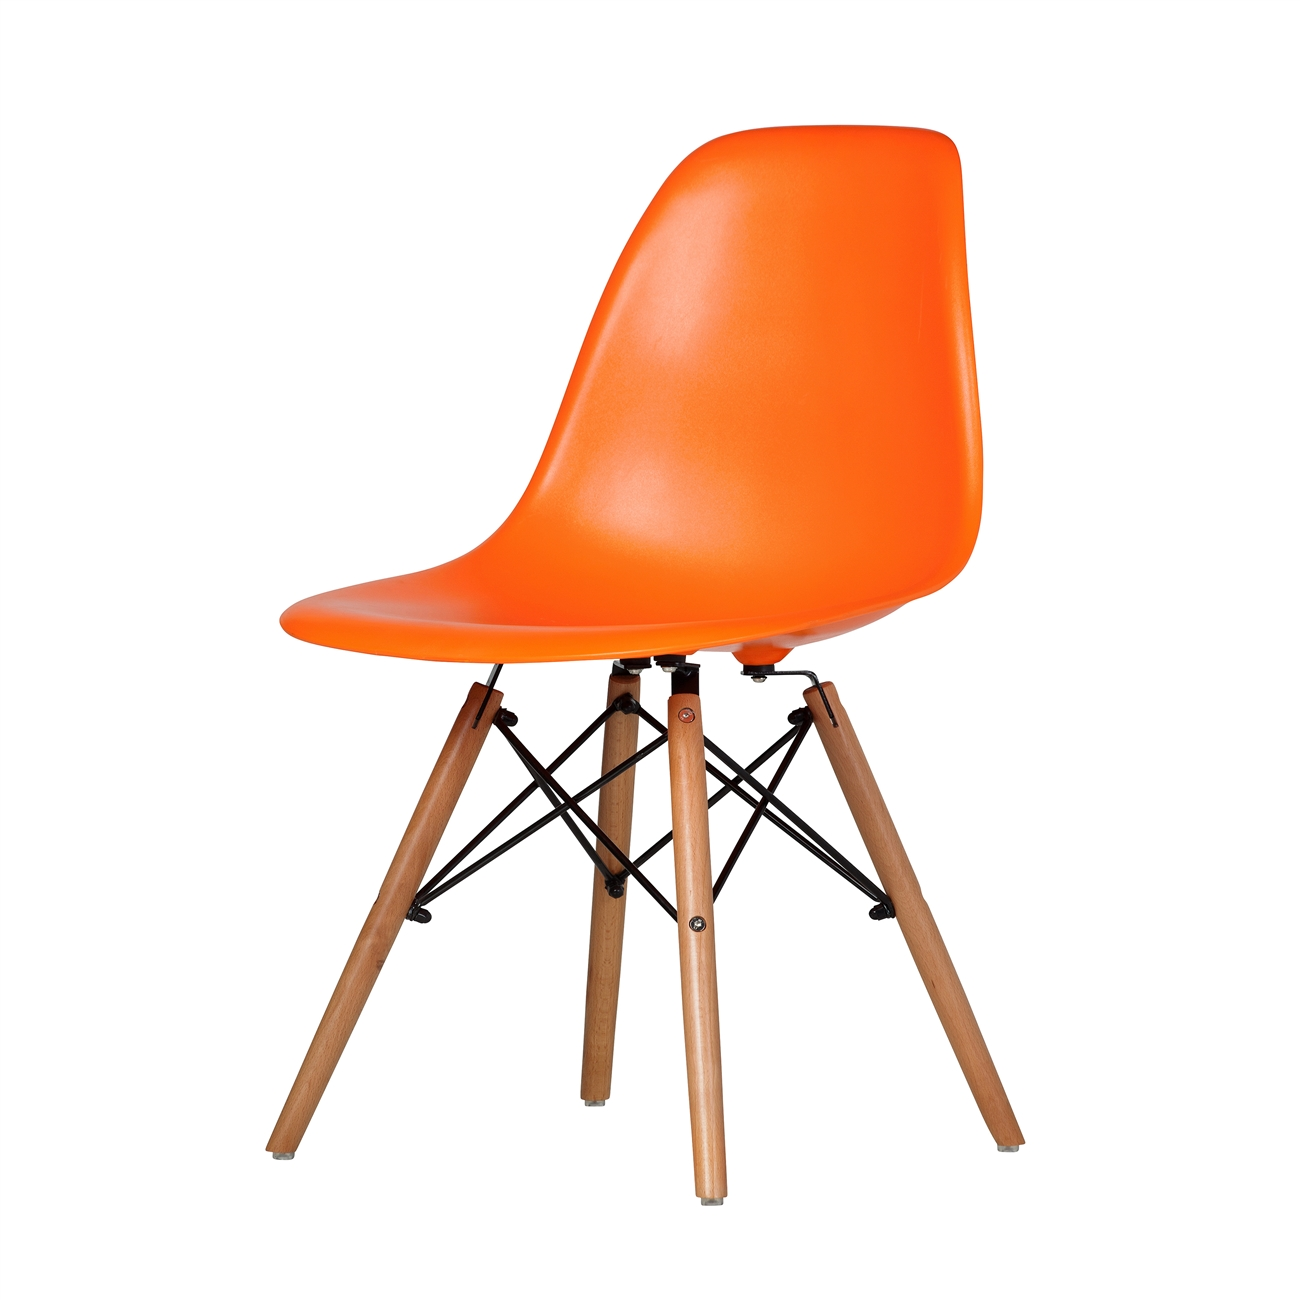 orange side chair wedding white covers charles eames dsw mid century modern plastic larger photo email a friend